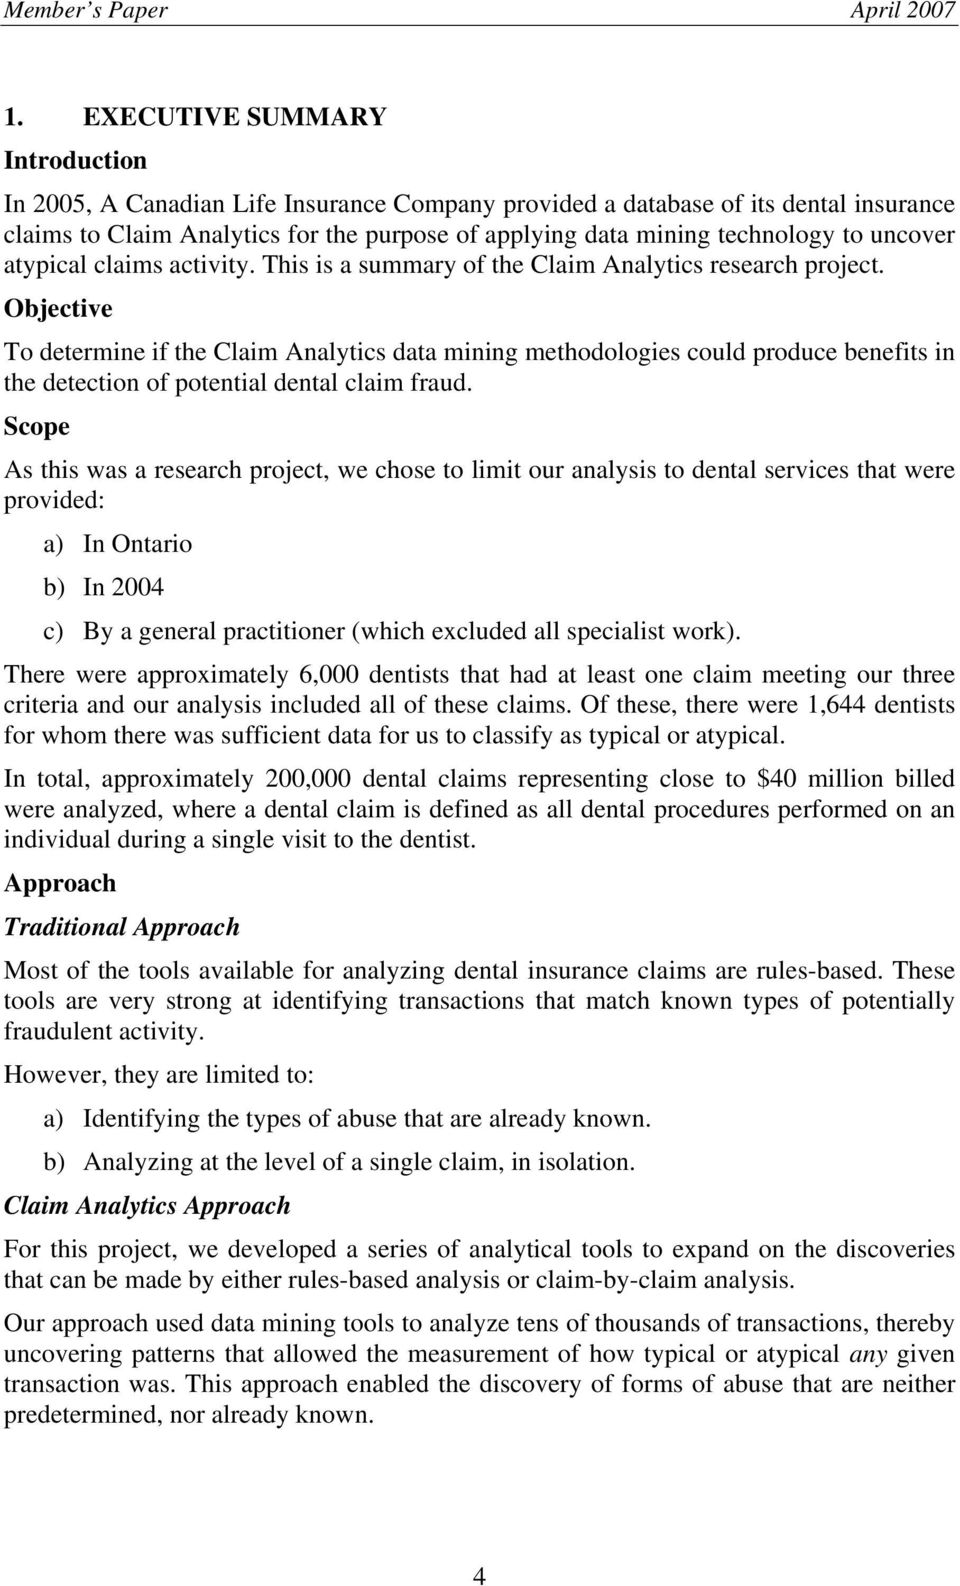 Objective To determine if the Claim Analytics data mining methodologies could produce benefits in the detection of potential dental claim fraud.